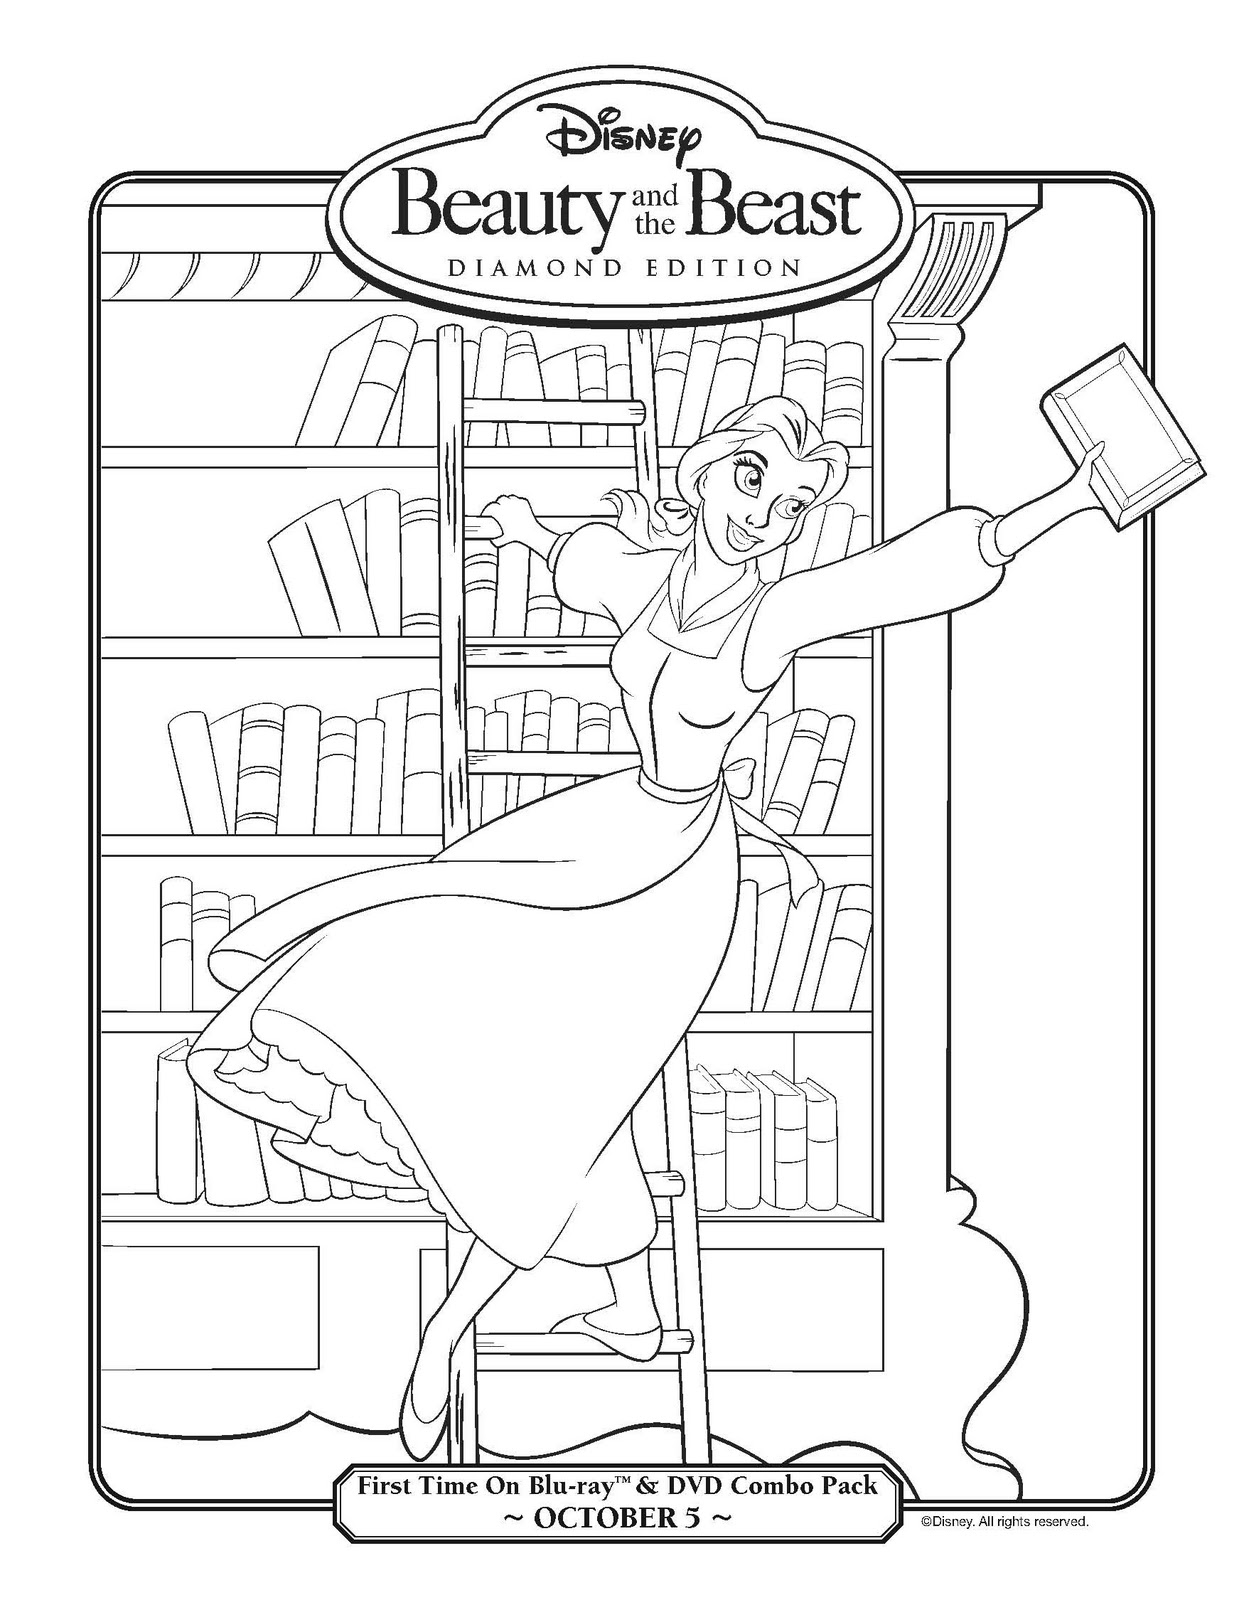 This is a photo of Hilaire gaston coloring page